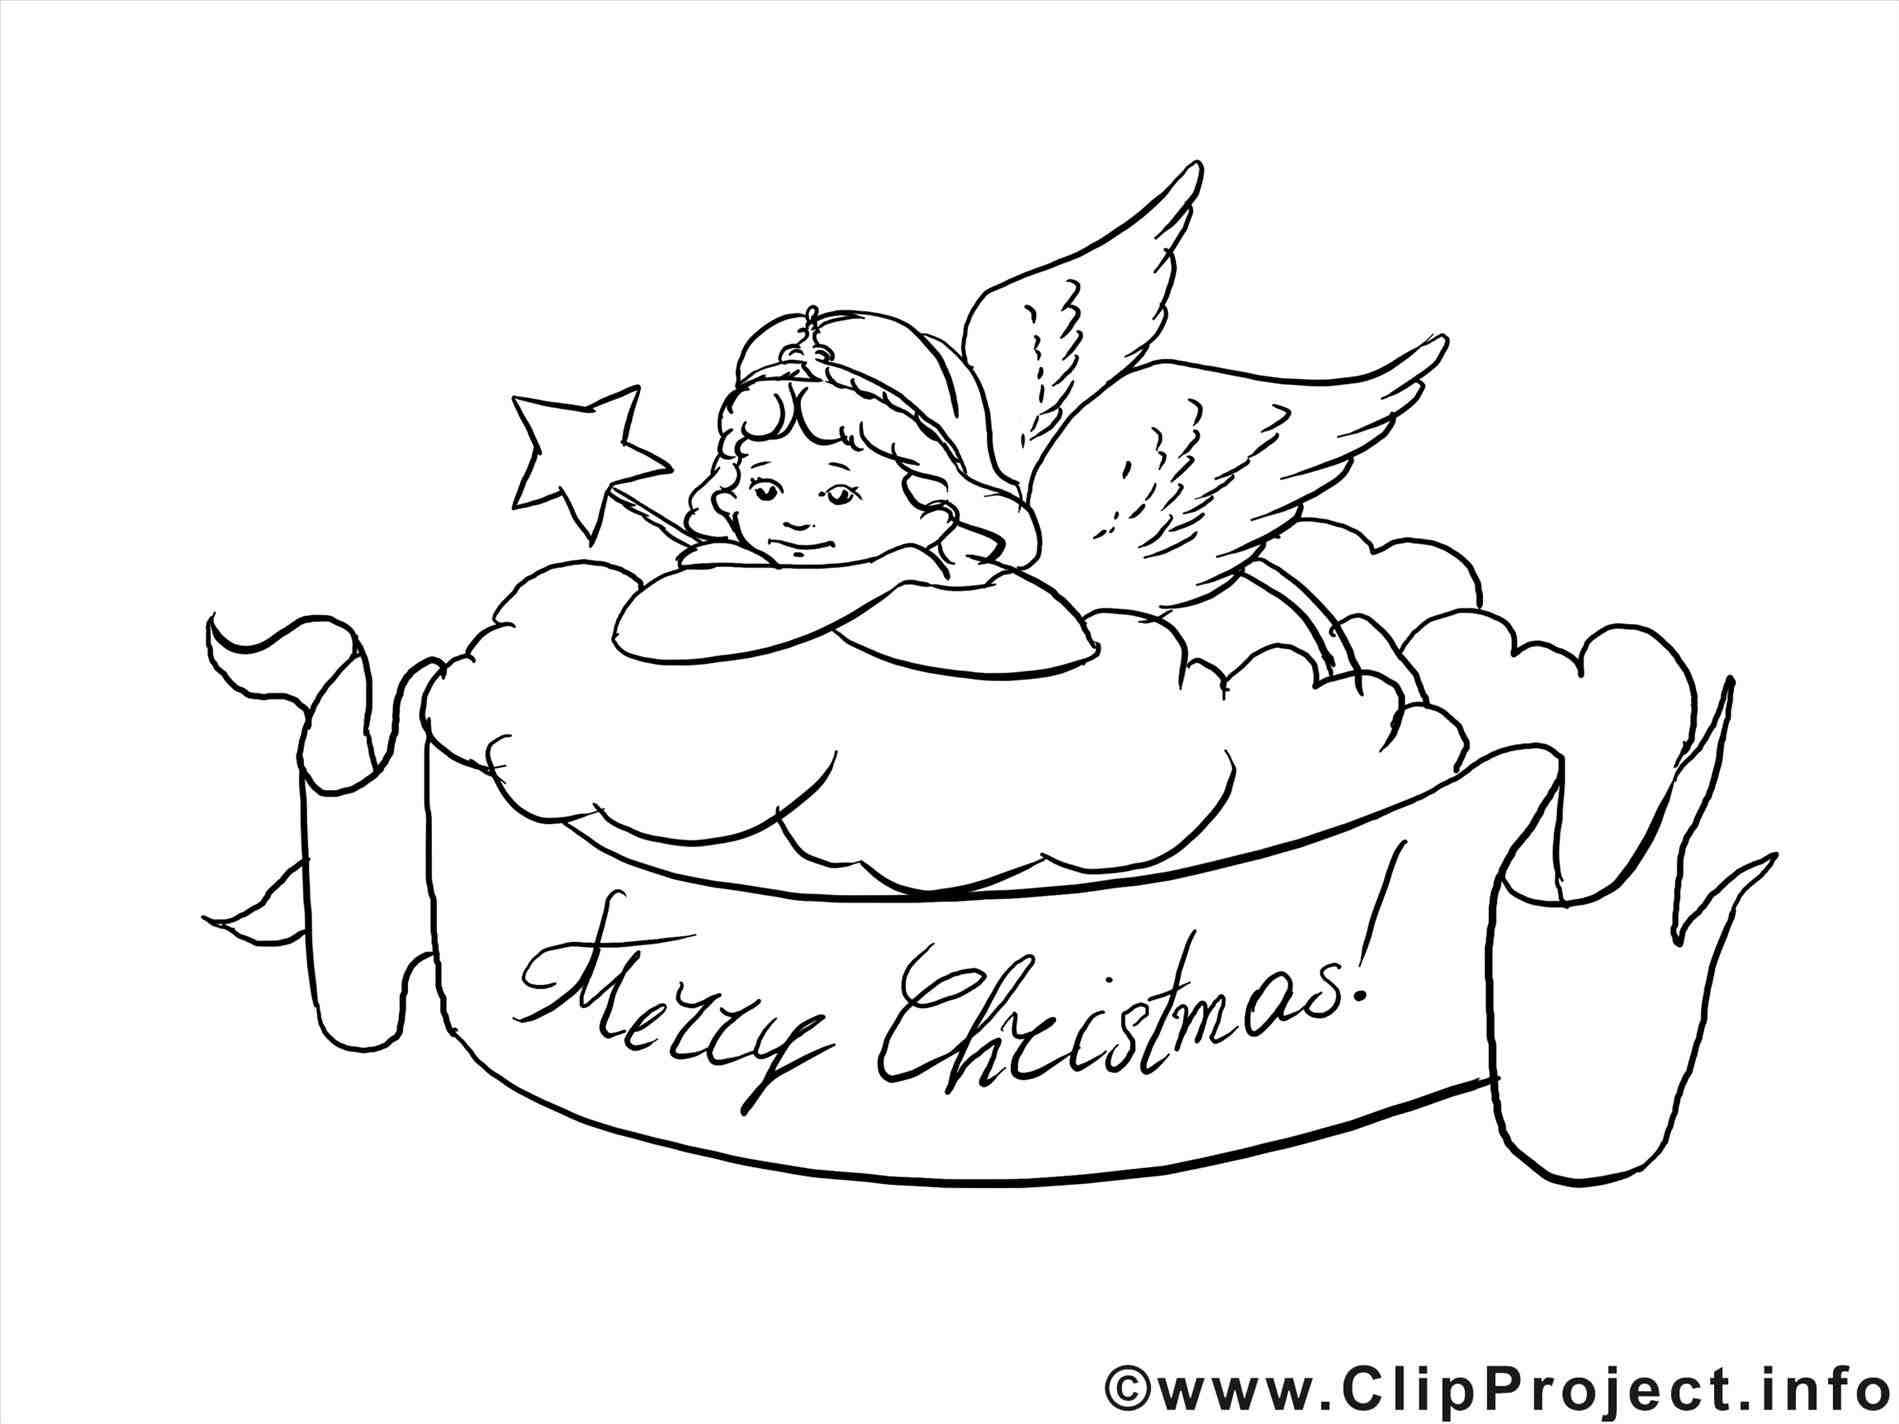 Merry Christmas Coloring Pages That Say With New Post